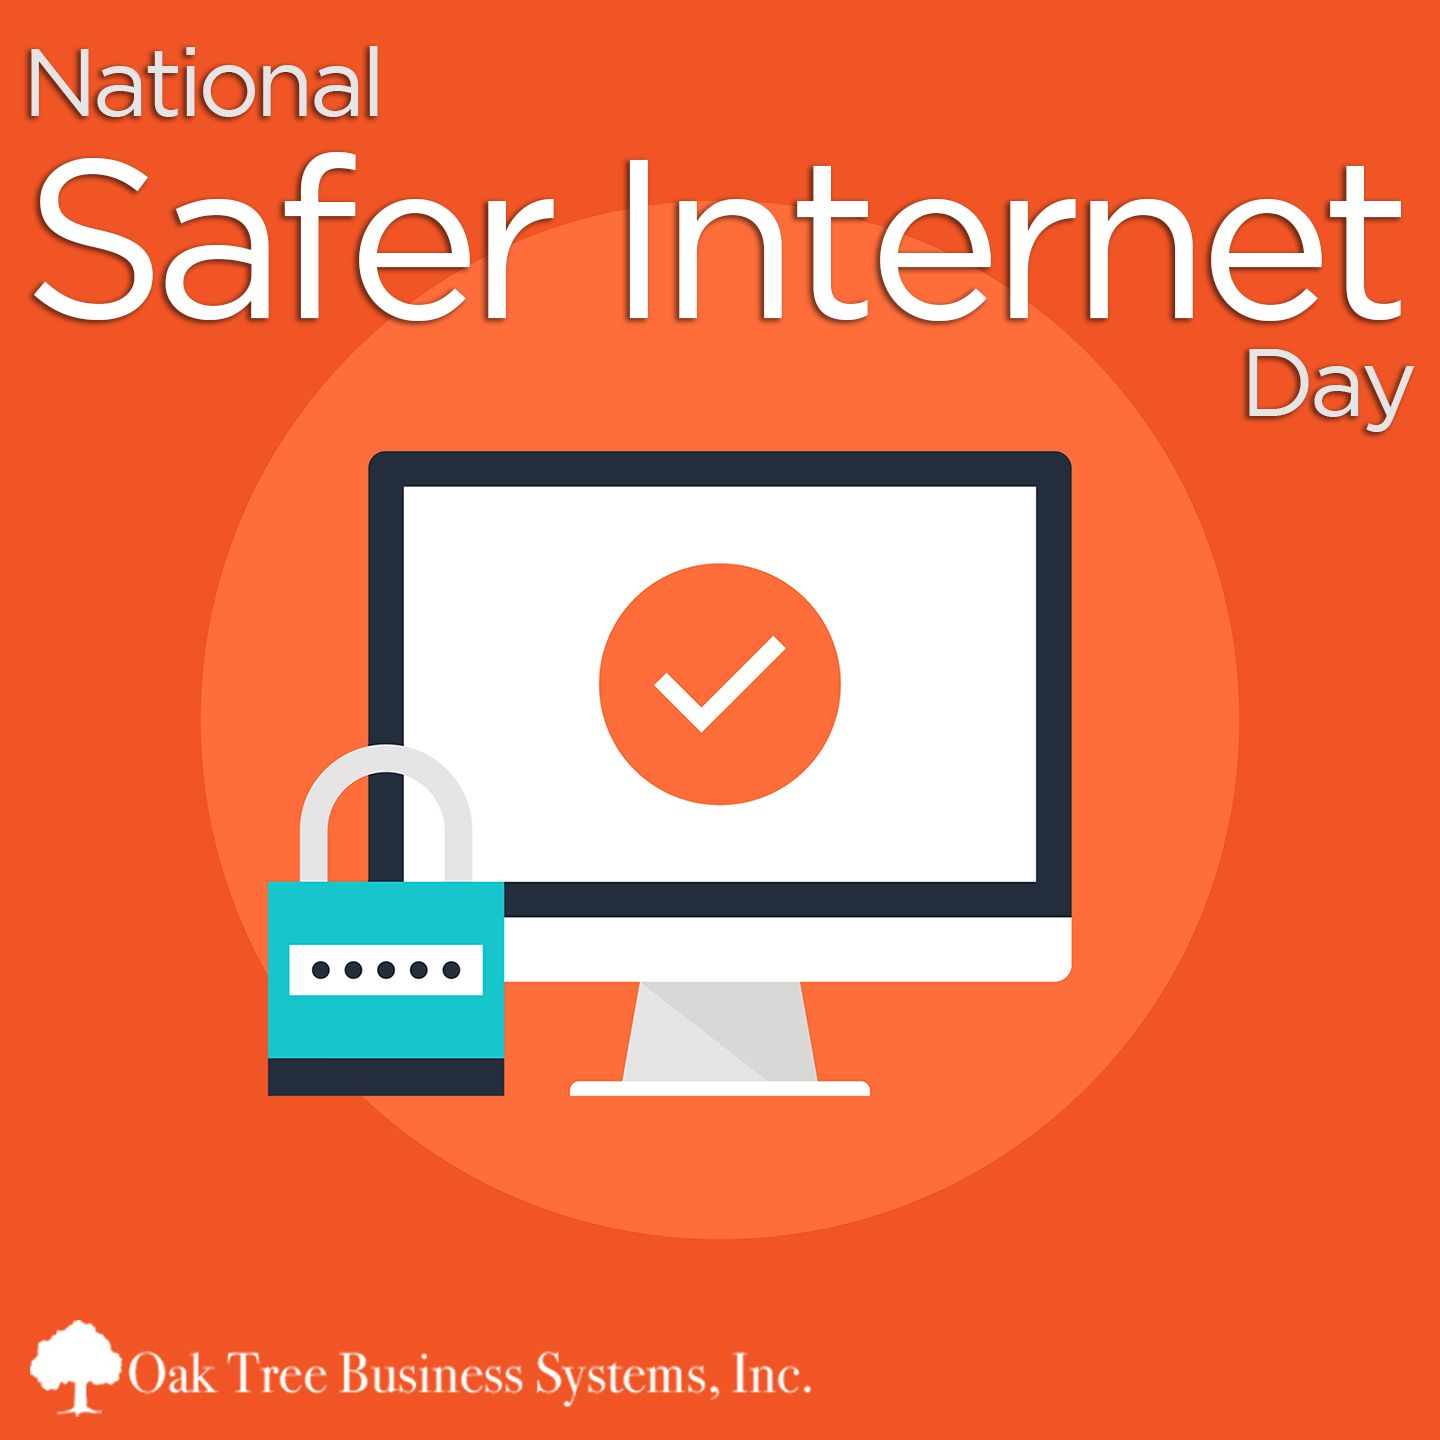 Be Safe On The Web Saferinternetday Chat With Us At Www Oaktreebiz Com Or Call Us At 800 537 9598 Business Systems Credit Union Forms Safe Internet